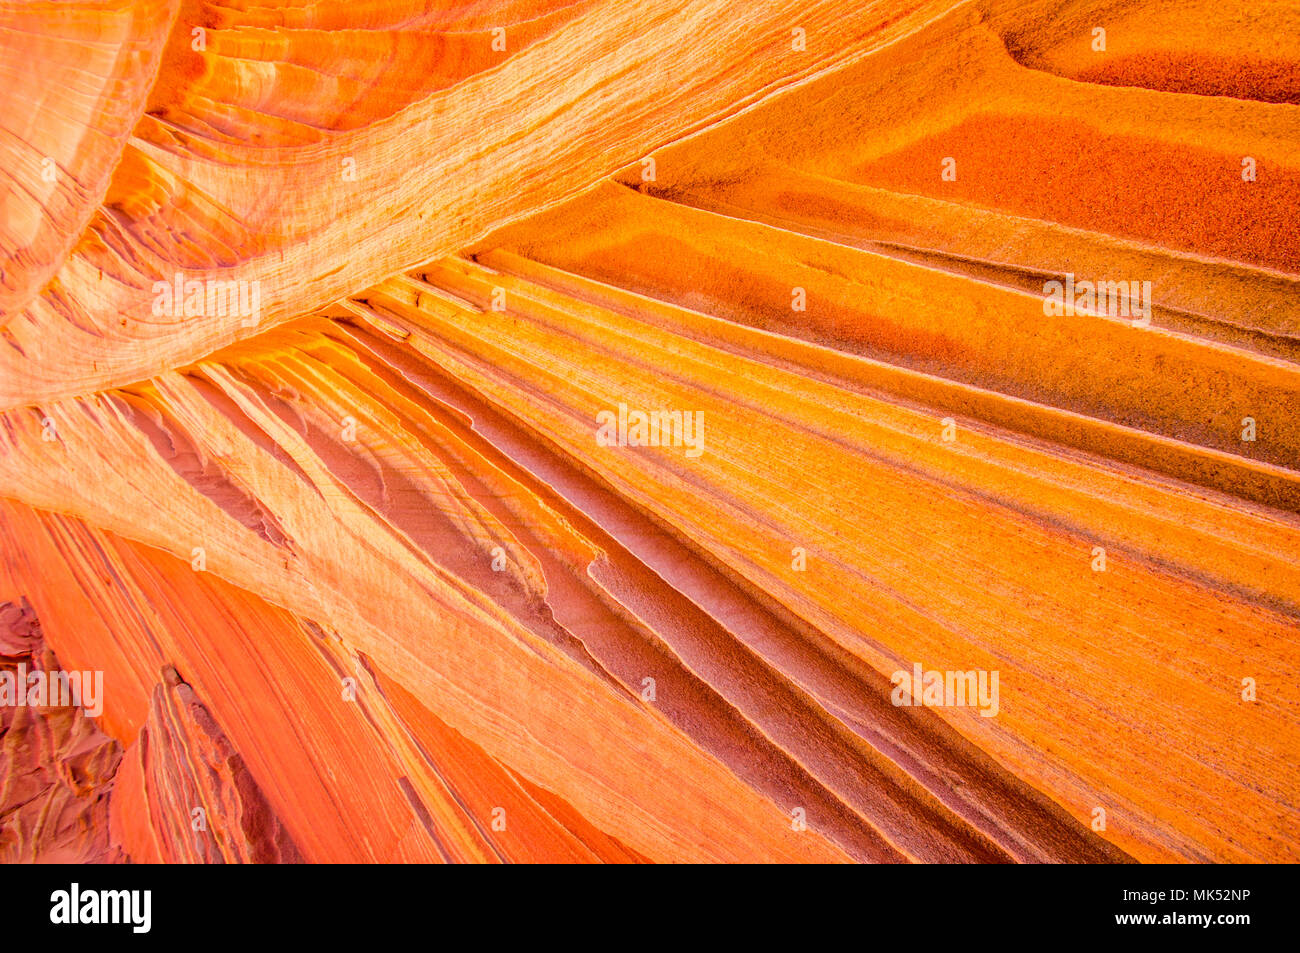 detailed view of Colorful sandstone patterns and fins Cottonwood access area South Coyote Buttes Vermilion Cliffs National Monument Arizona - Stock Image